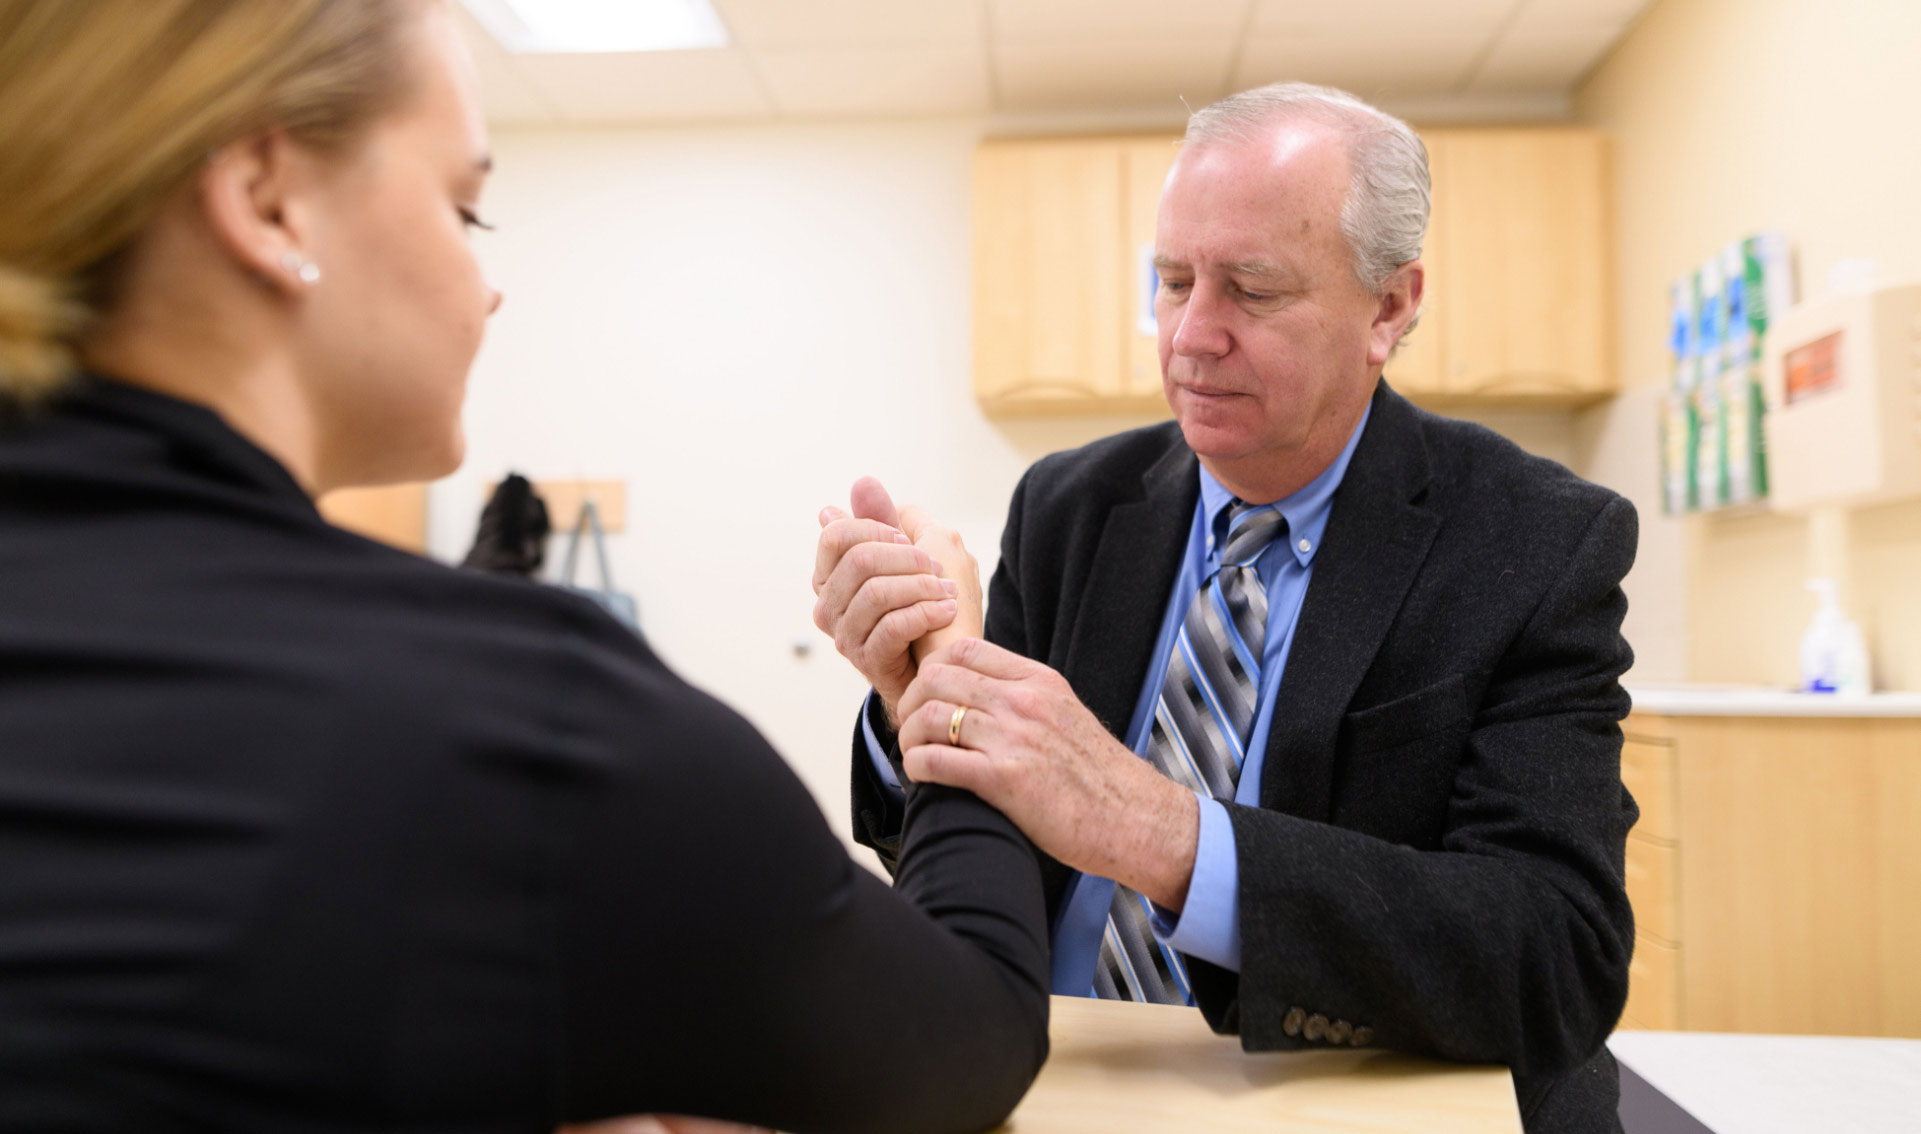 Dr. David Drake, an older man dressed in a blue button-up shirt, striped tie, and black suit jacket is seen appearing to help a young woman with her hand and fingers as he works intently.